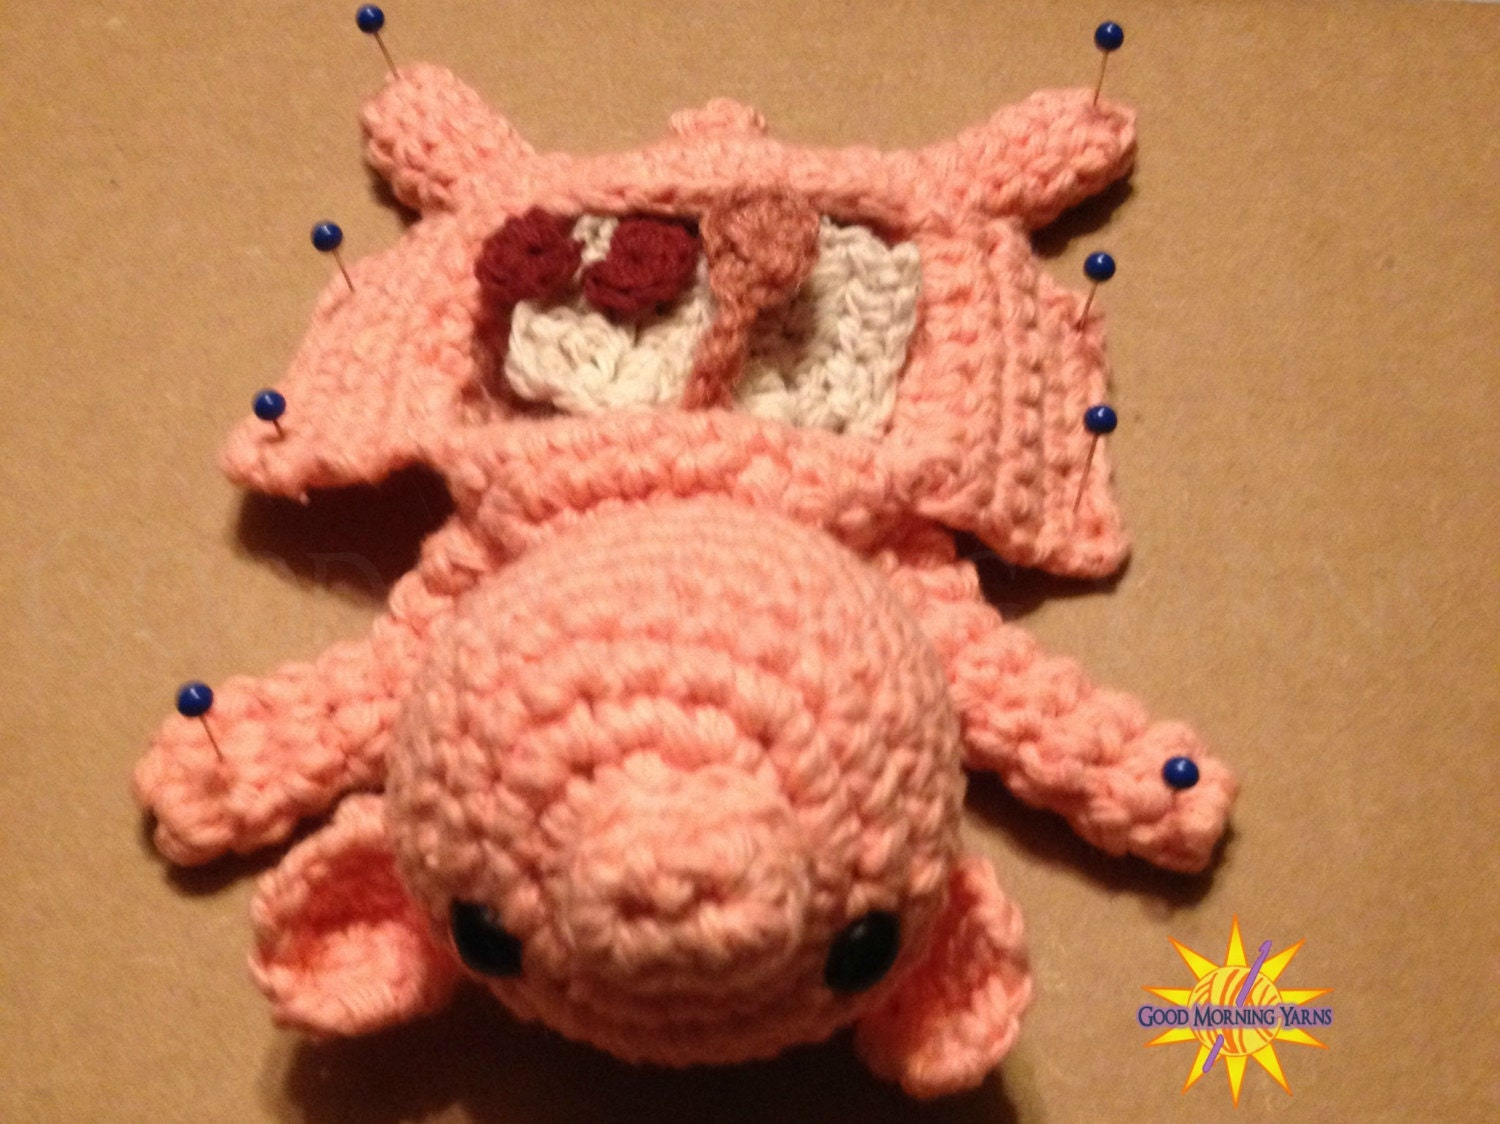 Dissected Fetal Pig with Removable Organs Crocheted Amigurumi